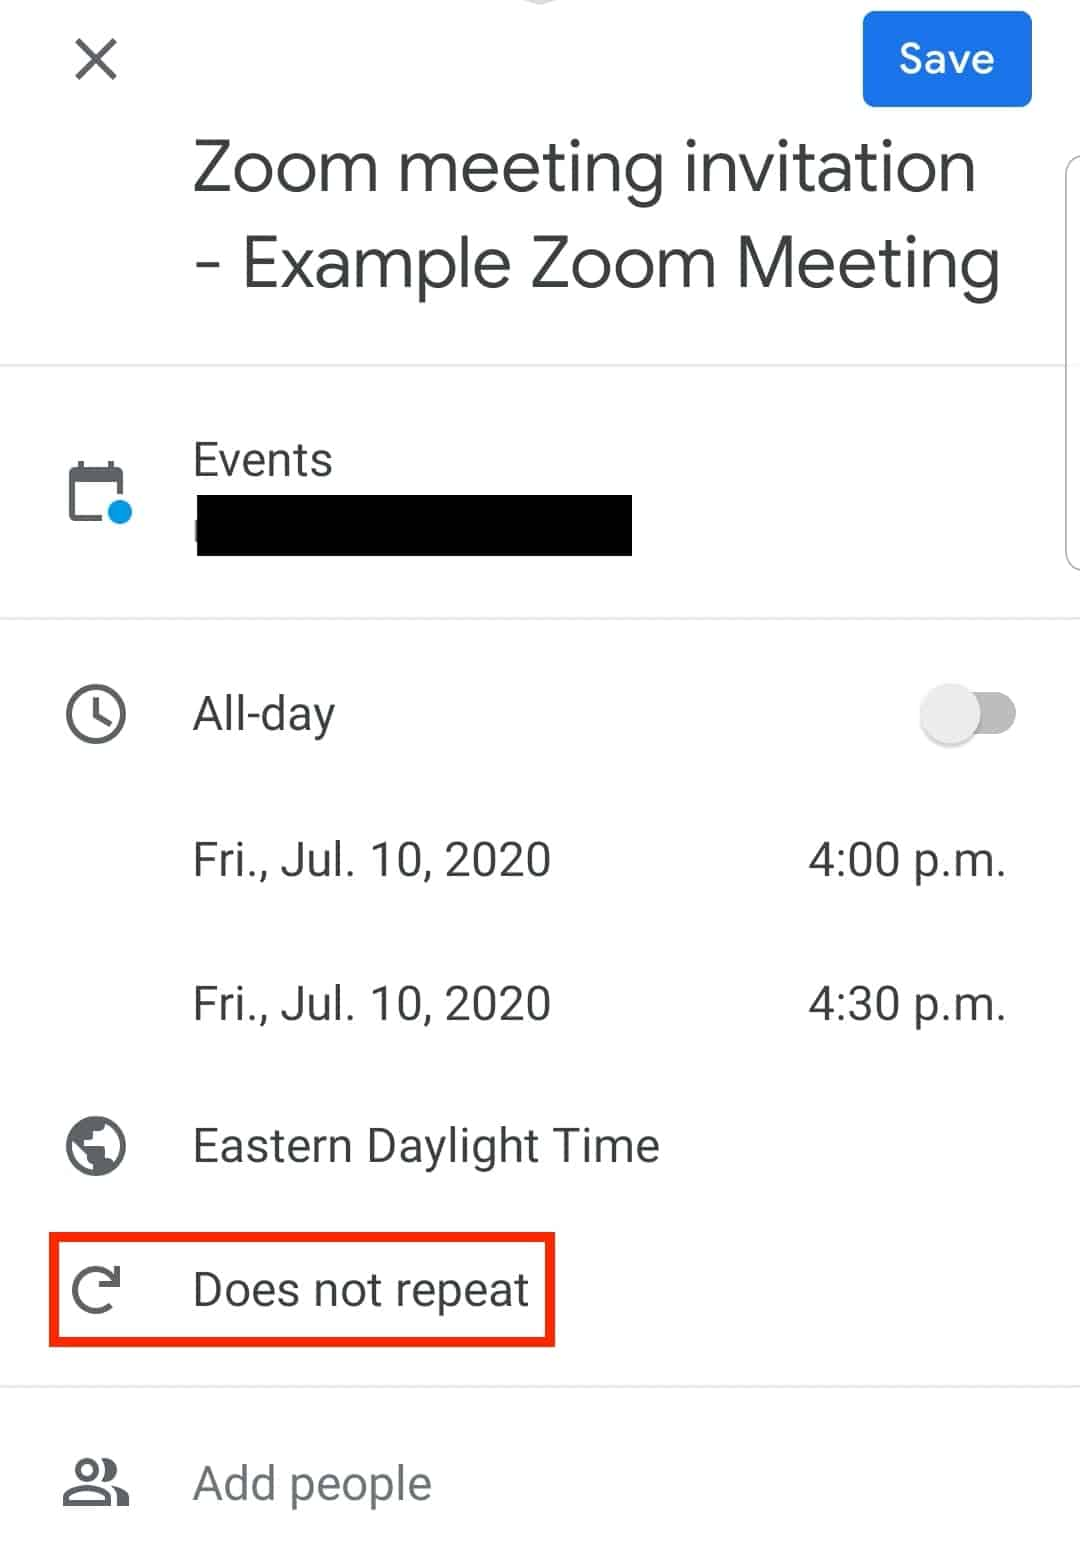 Does not repeat location on screen